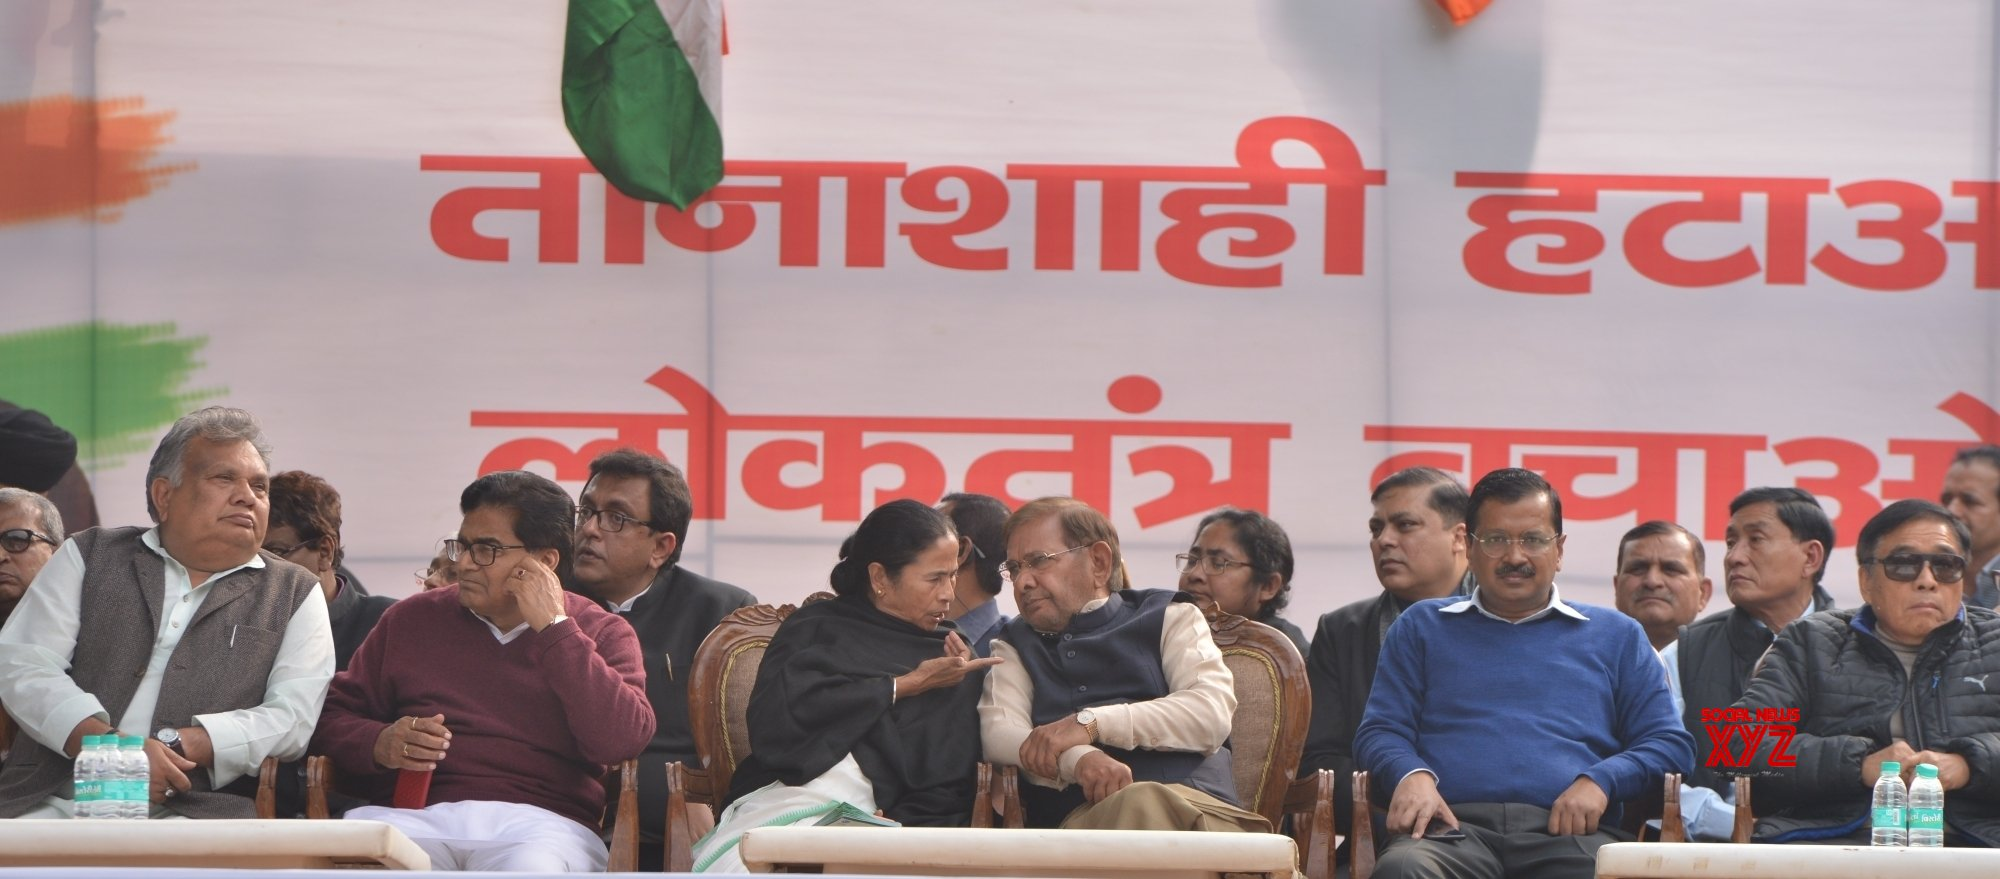 Oust Modi, opposition leaders say at Delhi rally